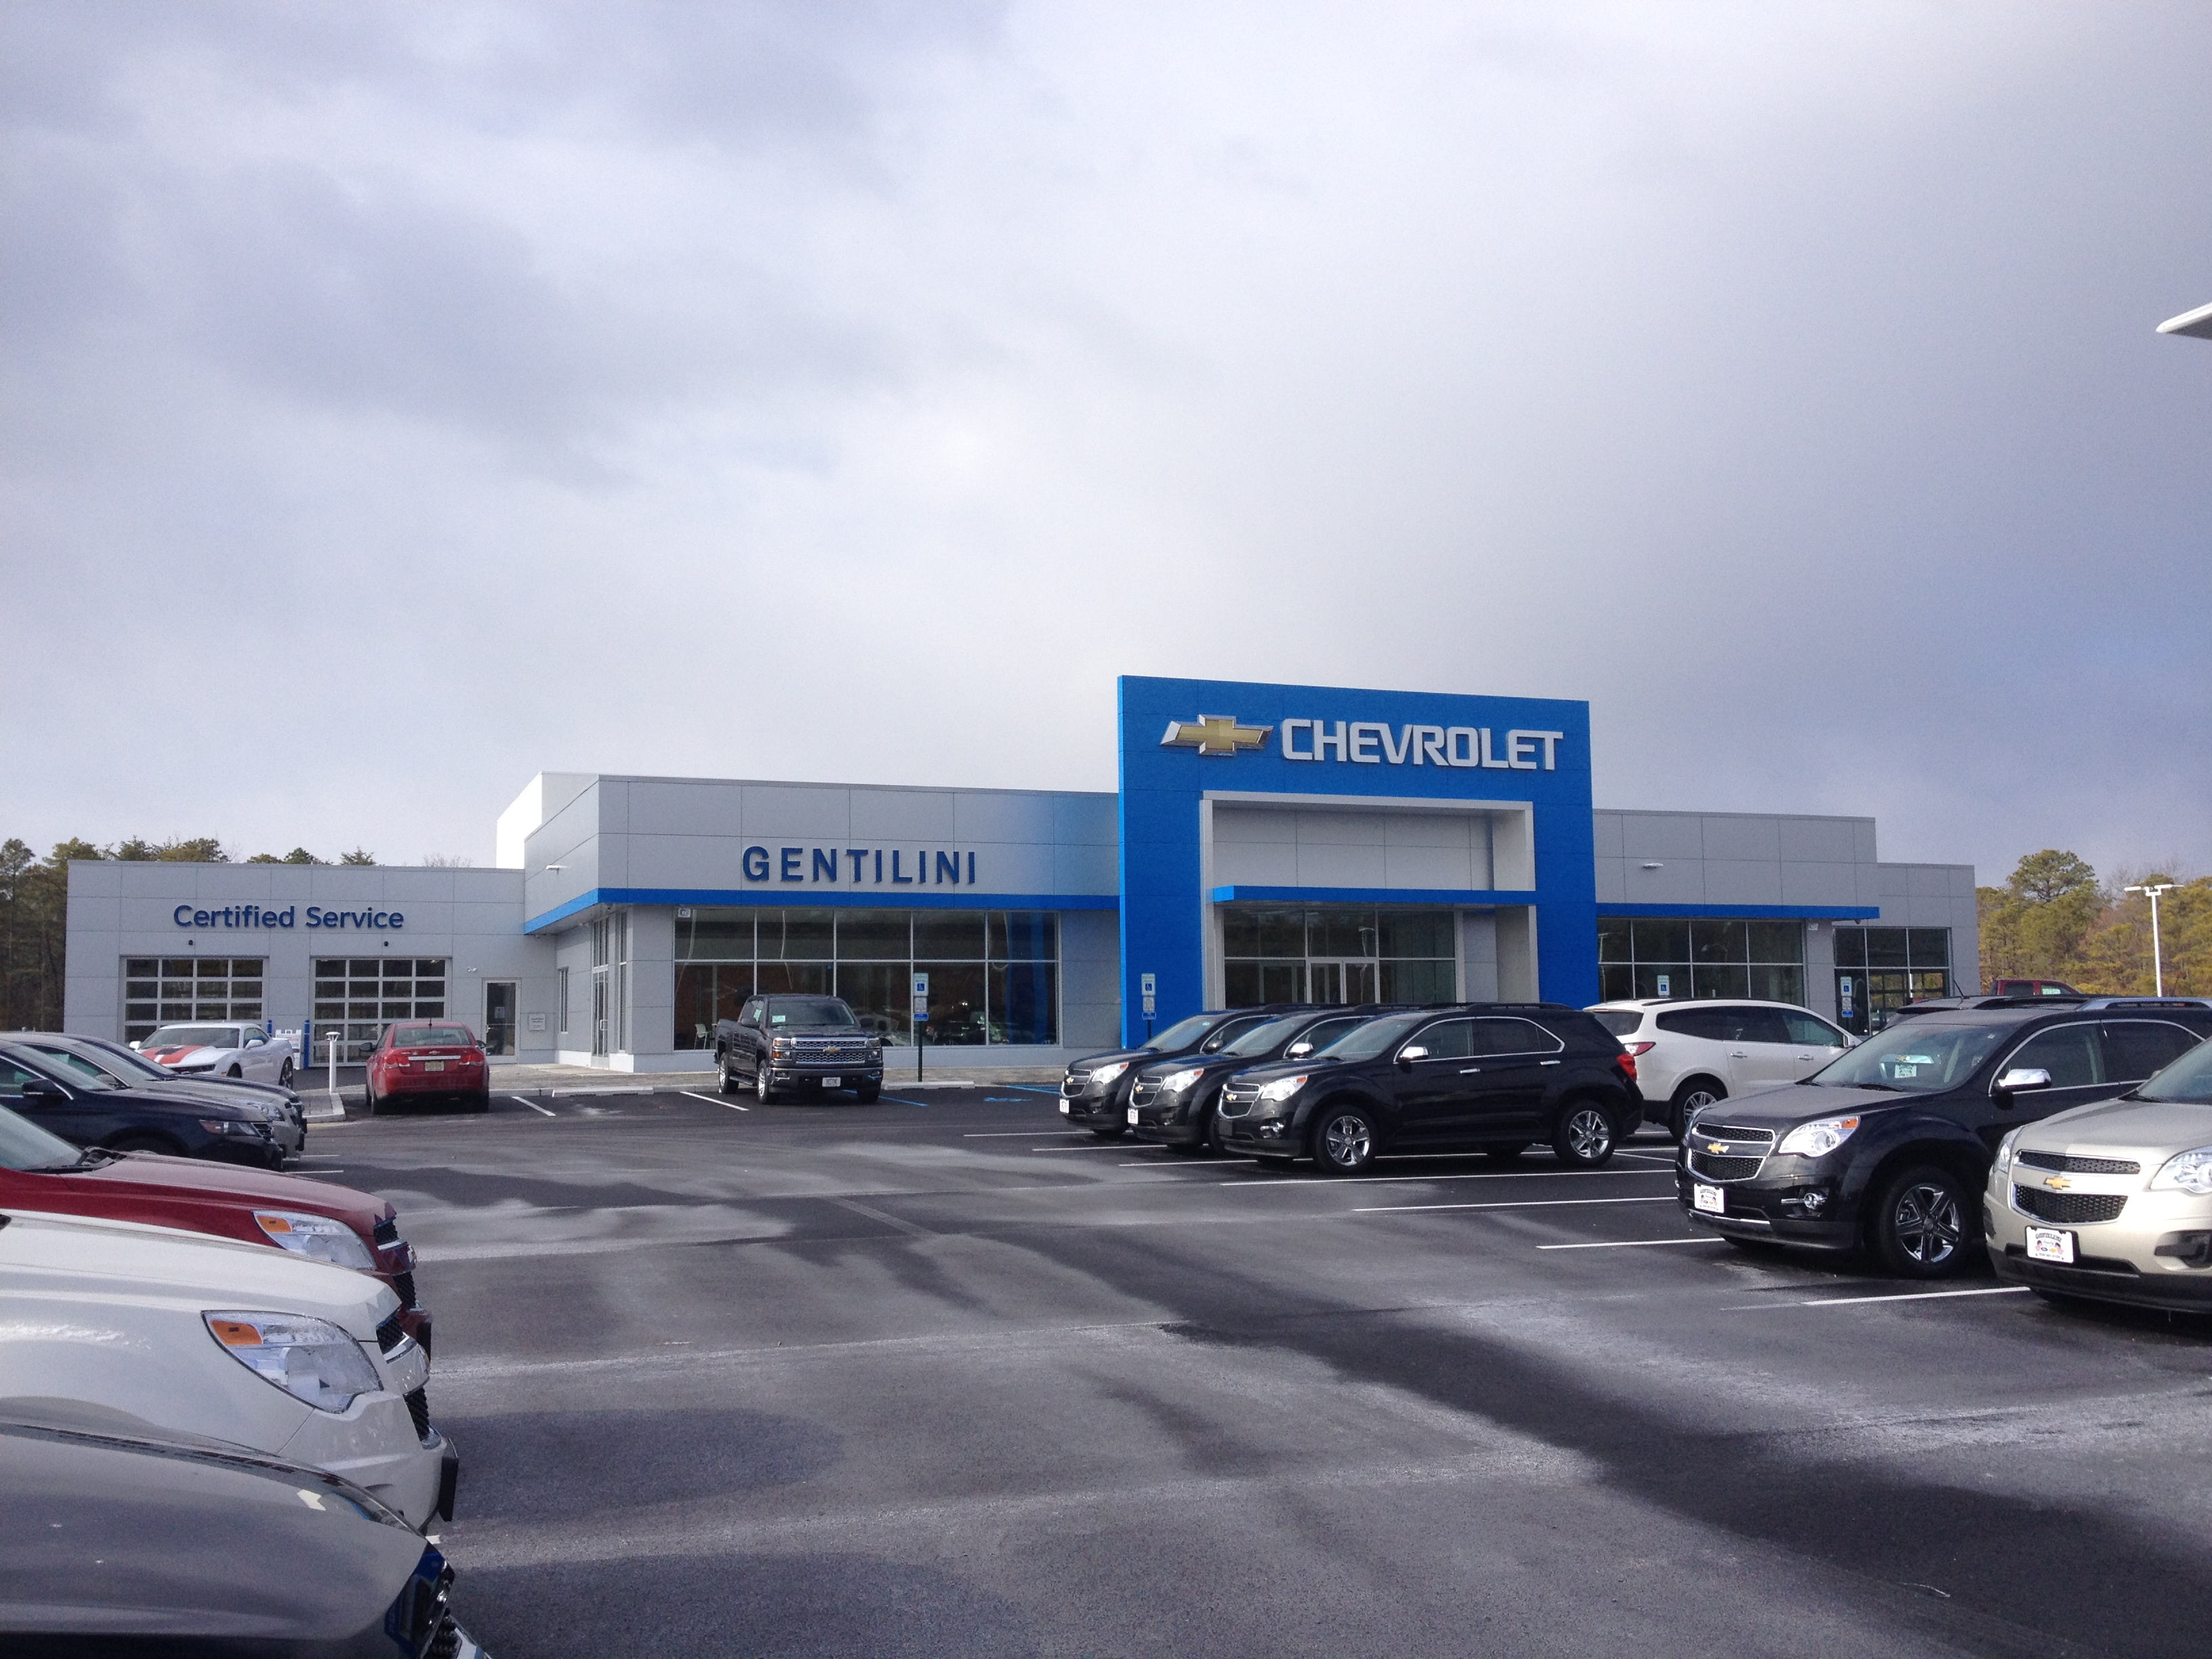 Gentilini Chevy Woodbine, NJ